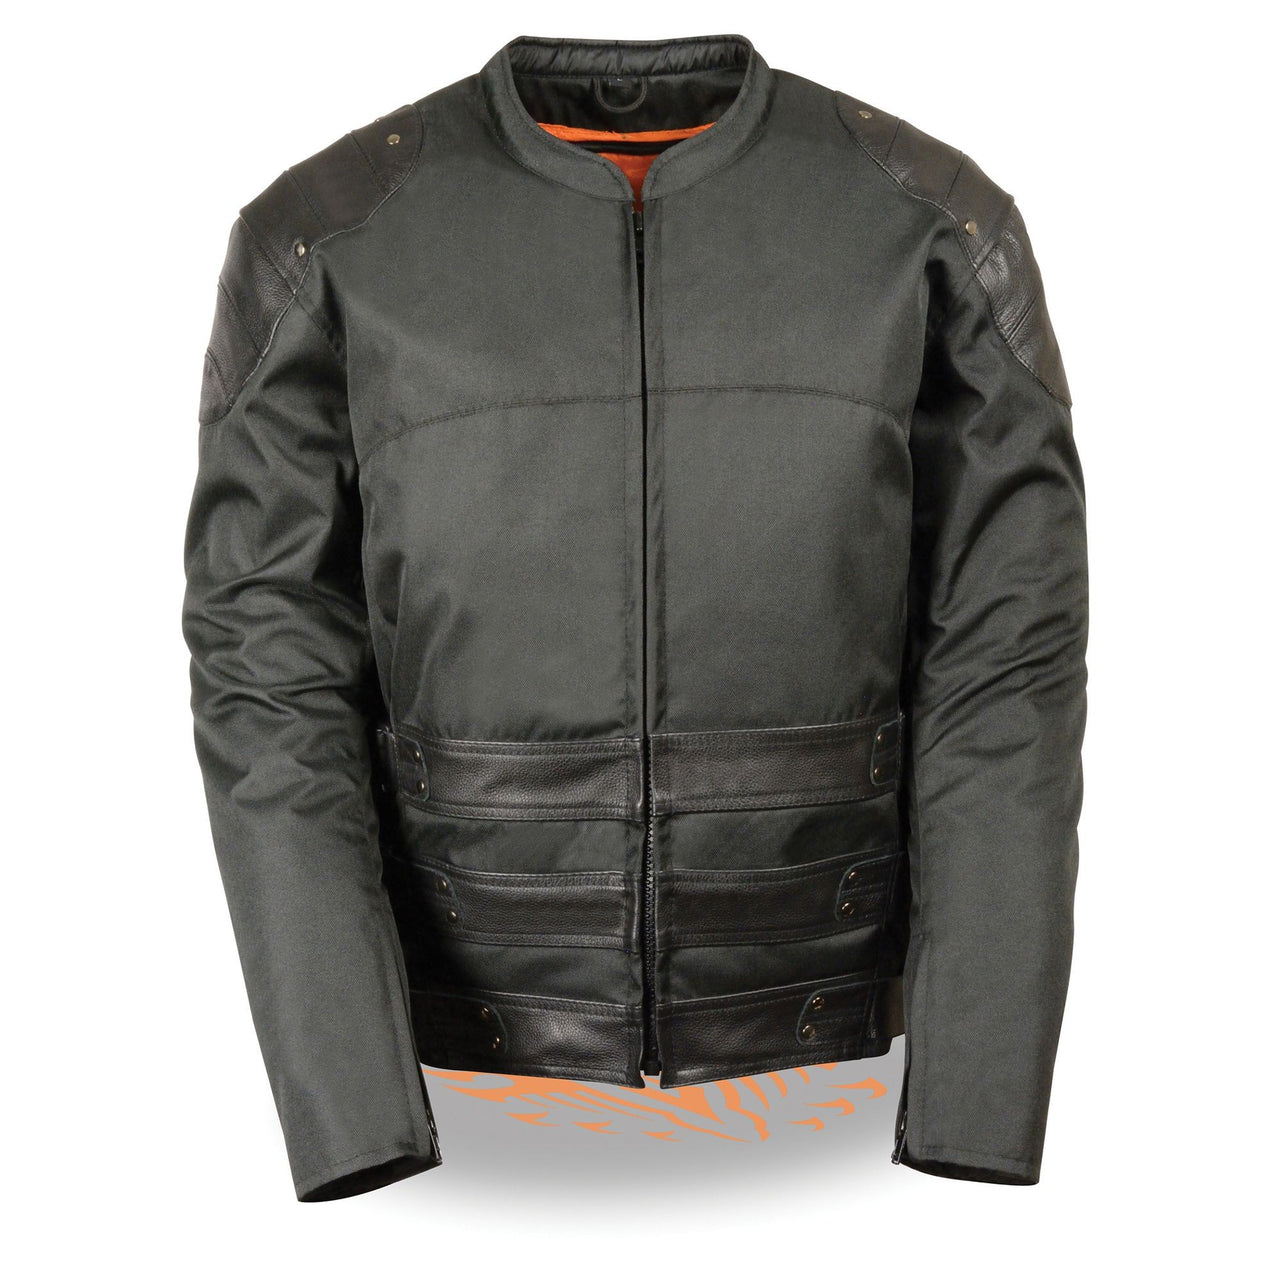 Men's Assault Style Leather/Textile Racer Jacket - HighwayLeather